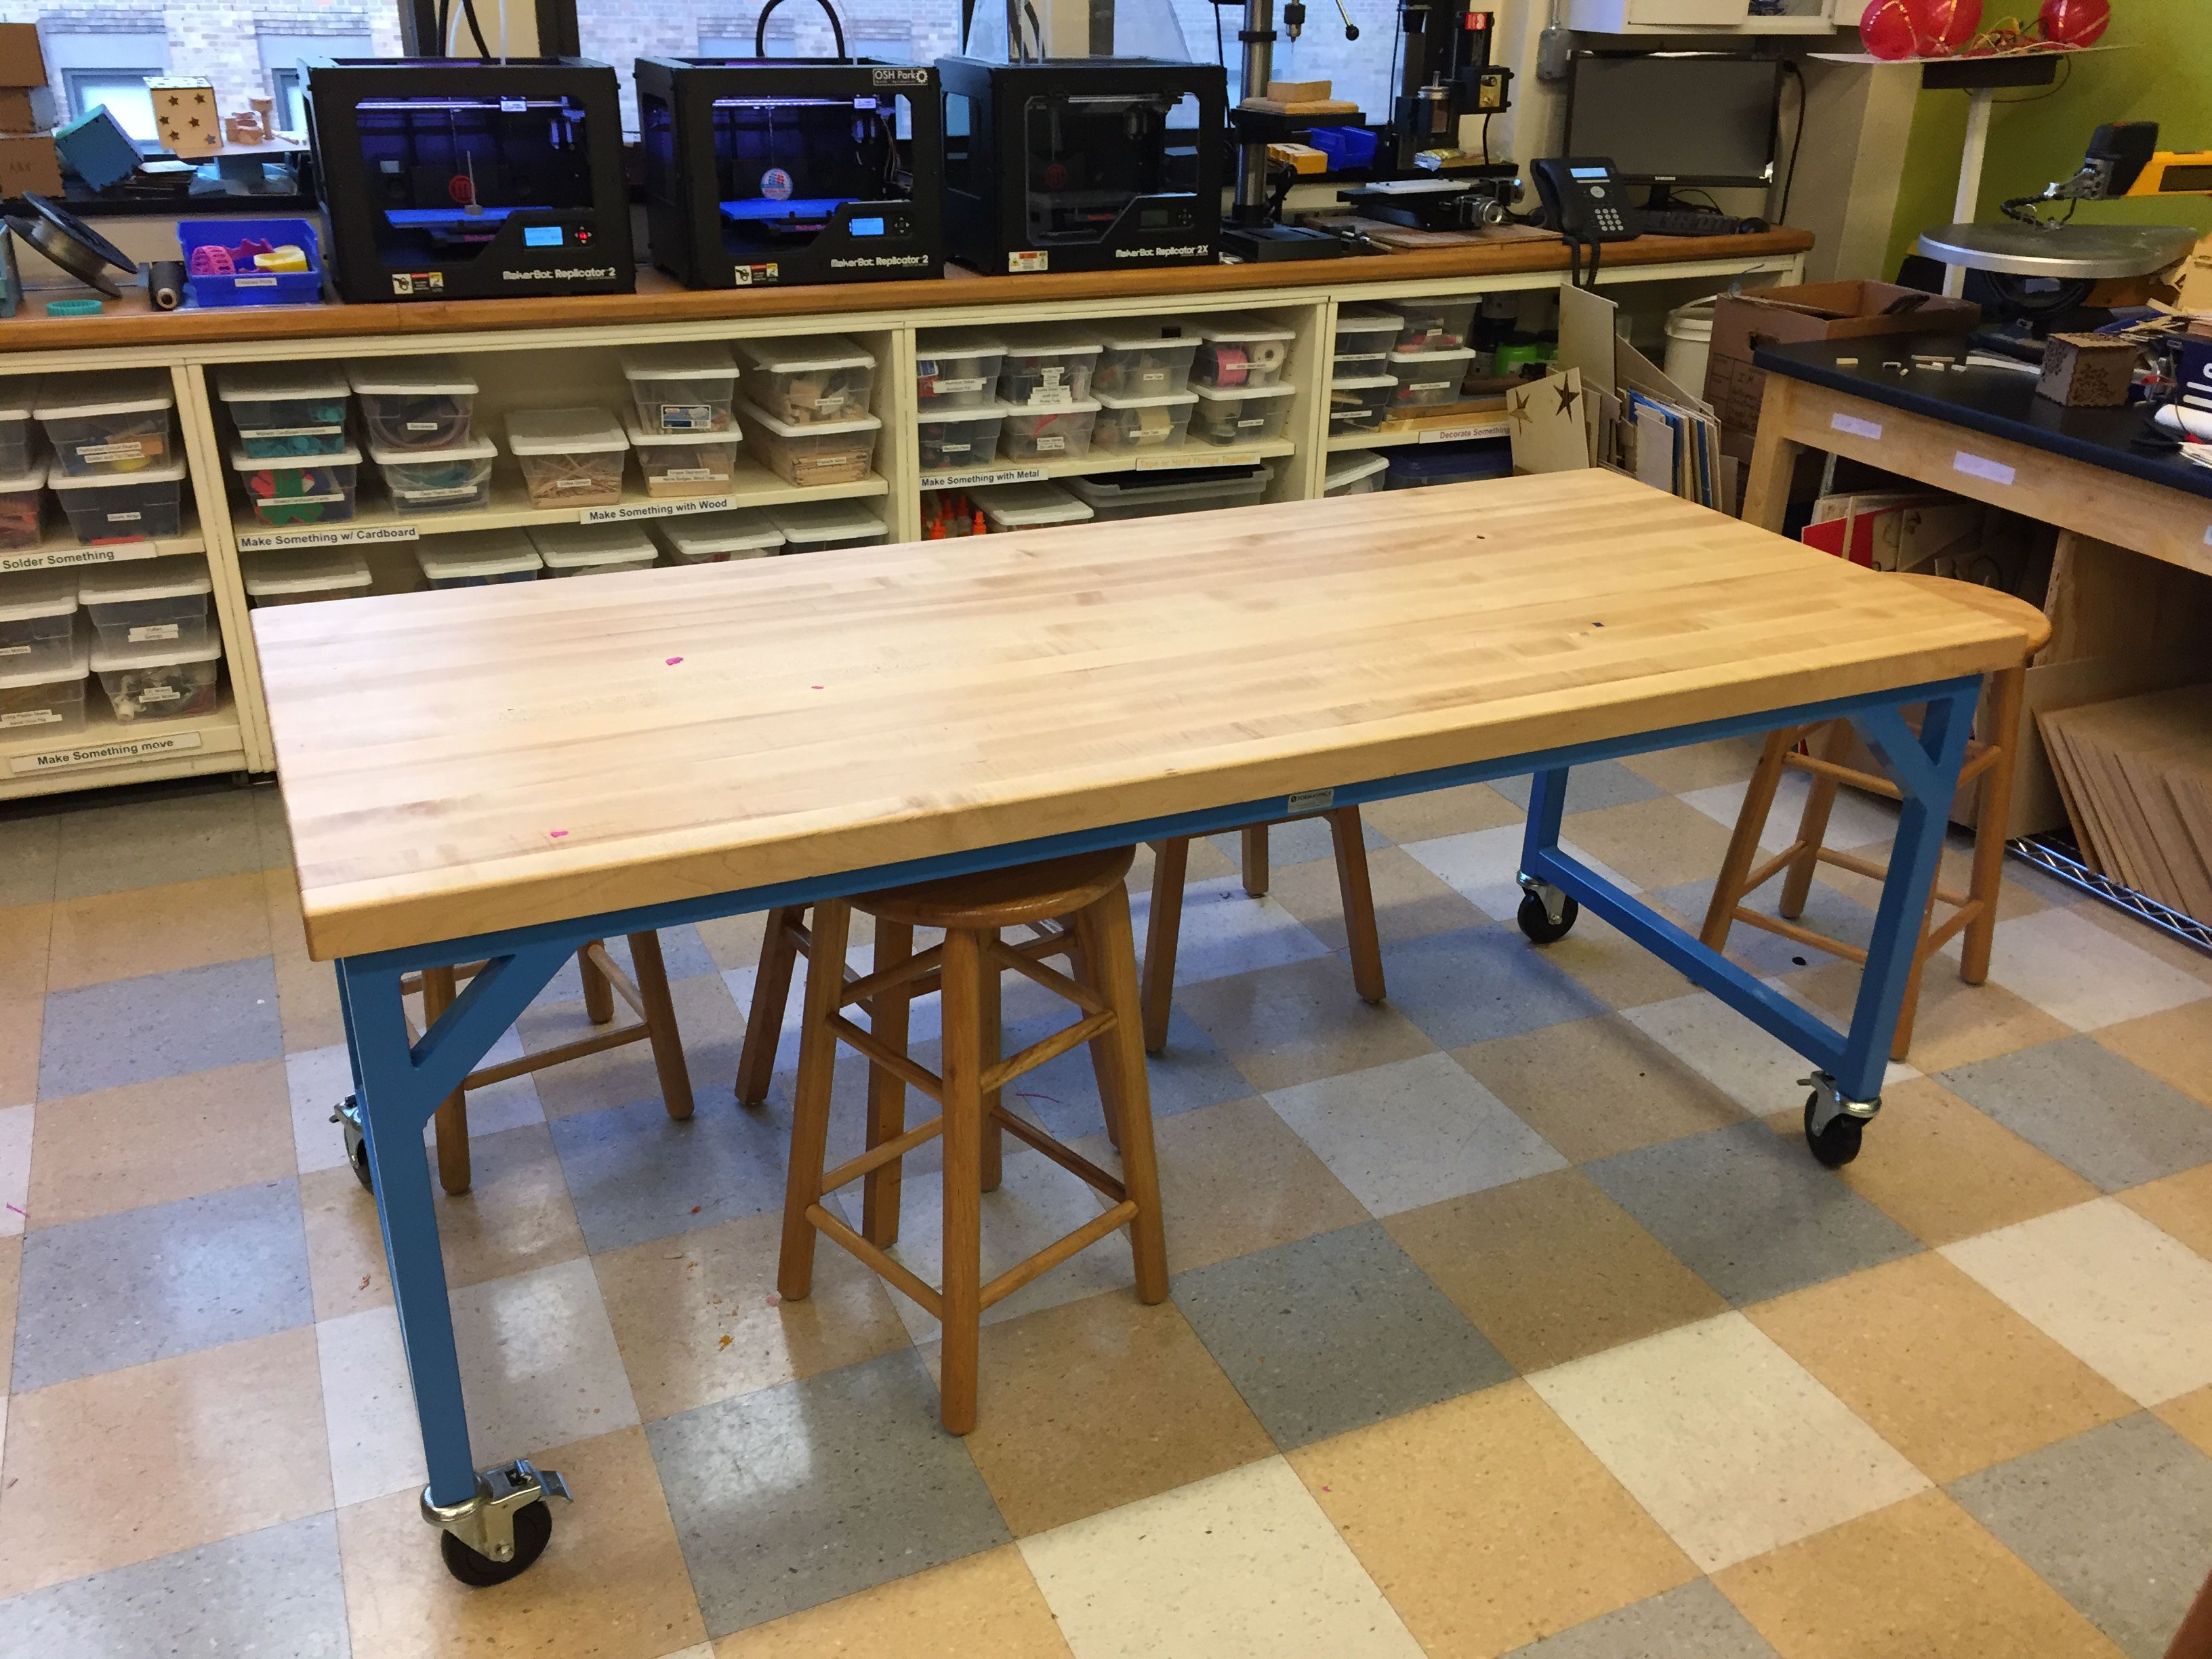 Great table made by FormaSpace at Marymount middle school fab lab